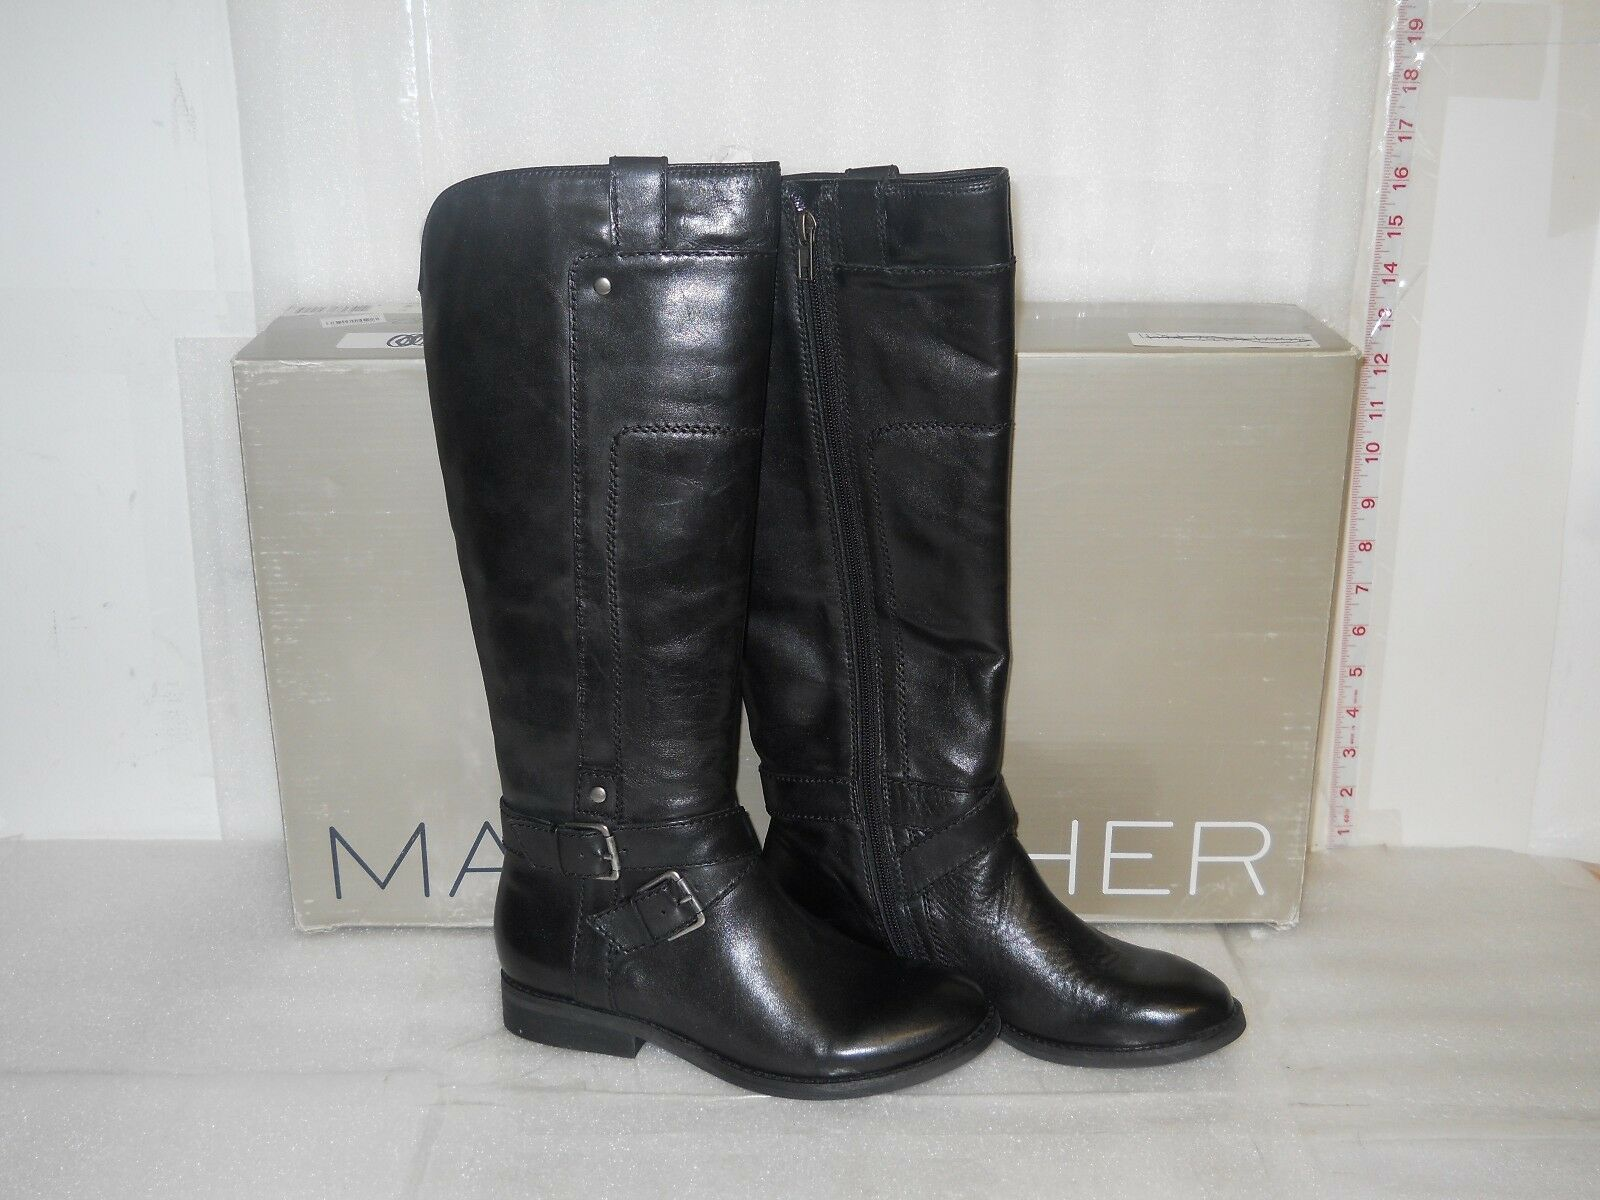 Marc Fisher New Womens Artful Black Leather boots 5.5 M Shoes NWB